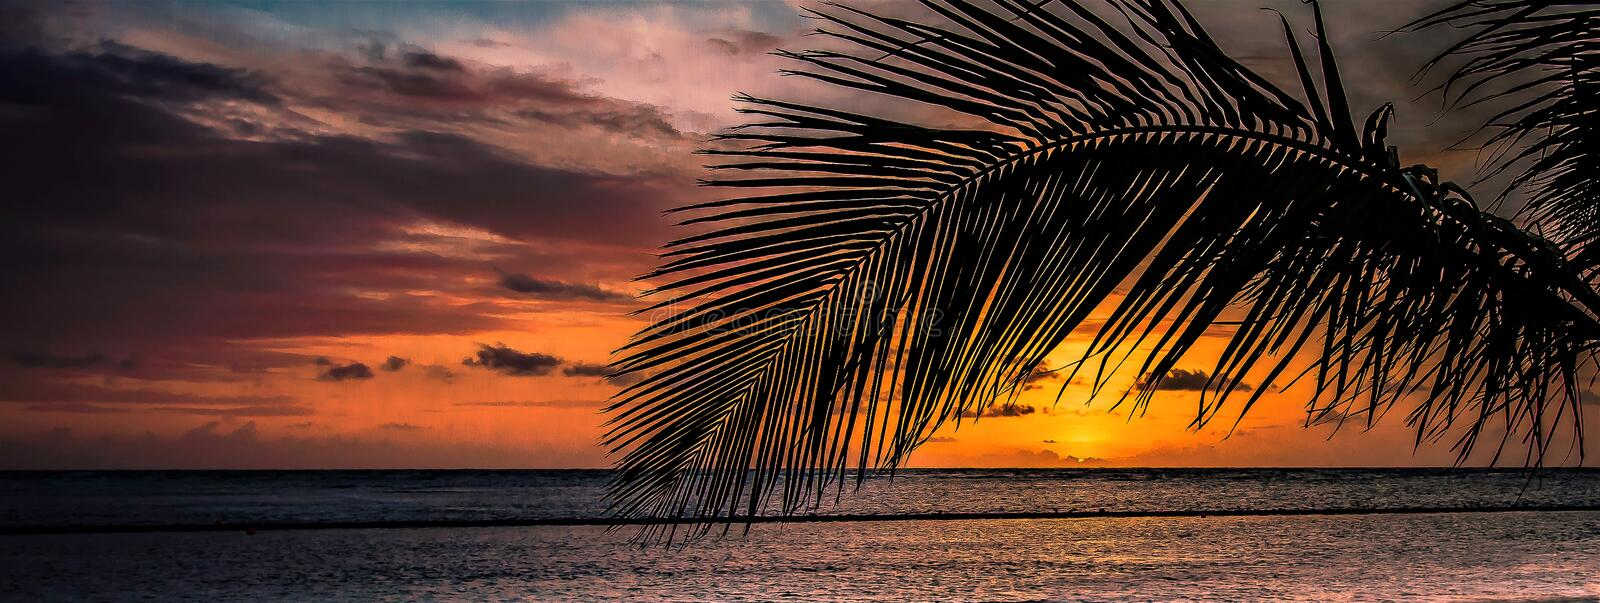 Sunrise in Caribbean, The New Day Starts royalty free stock images